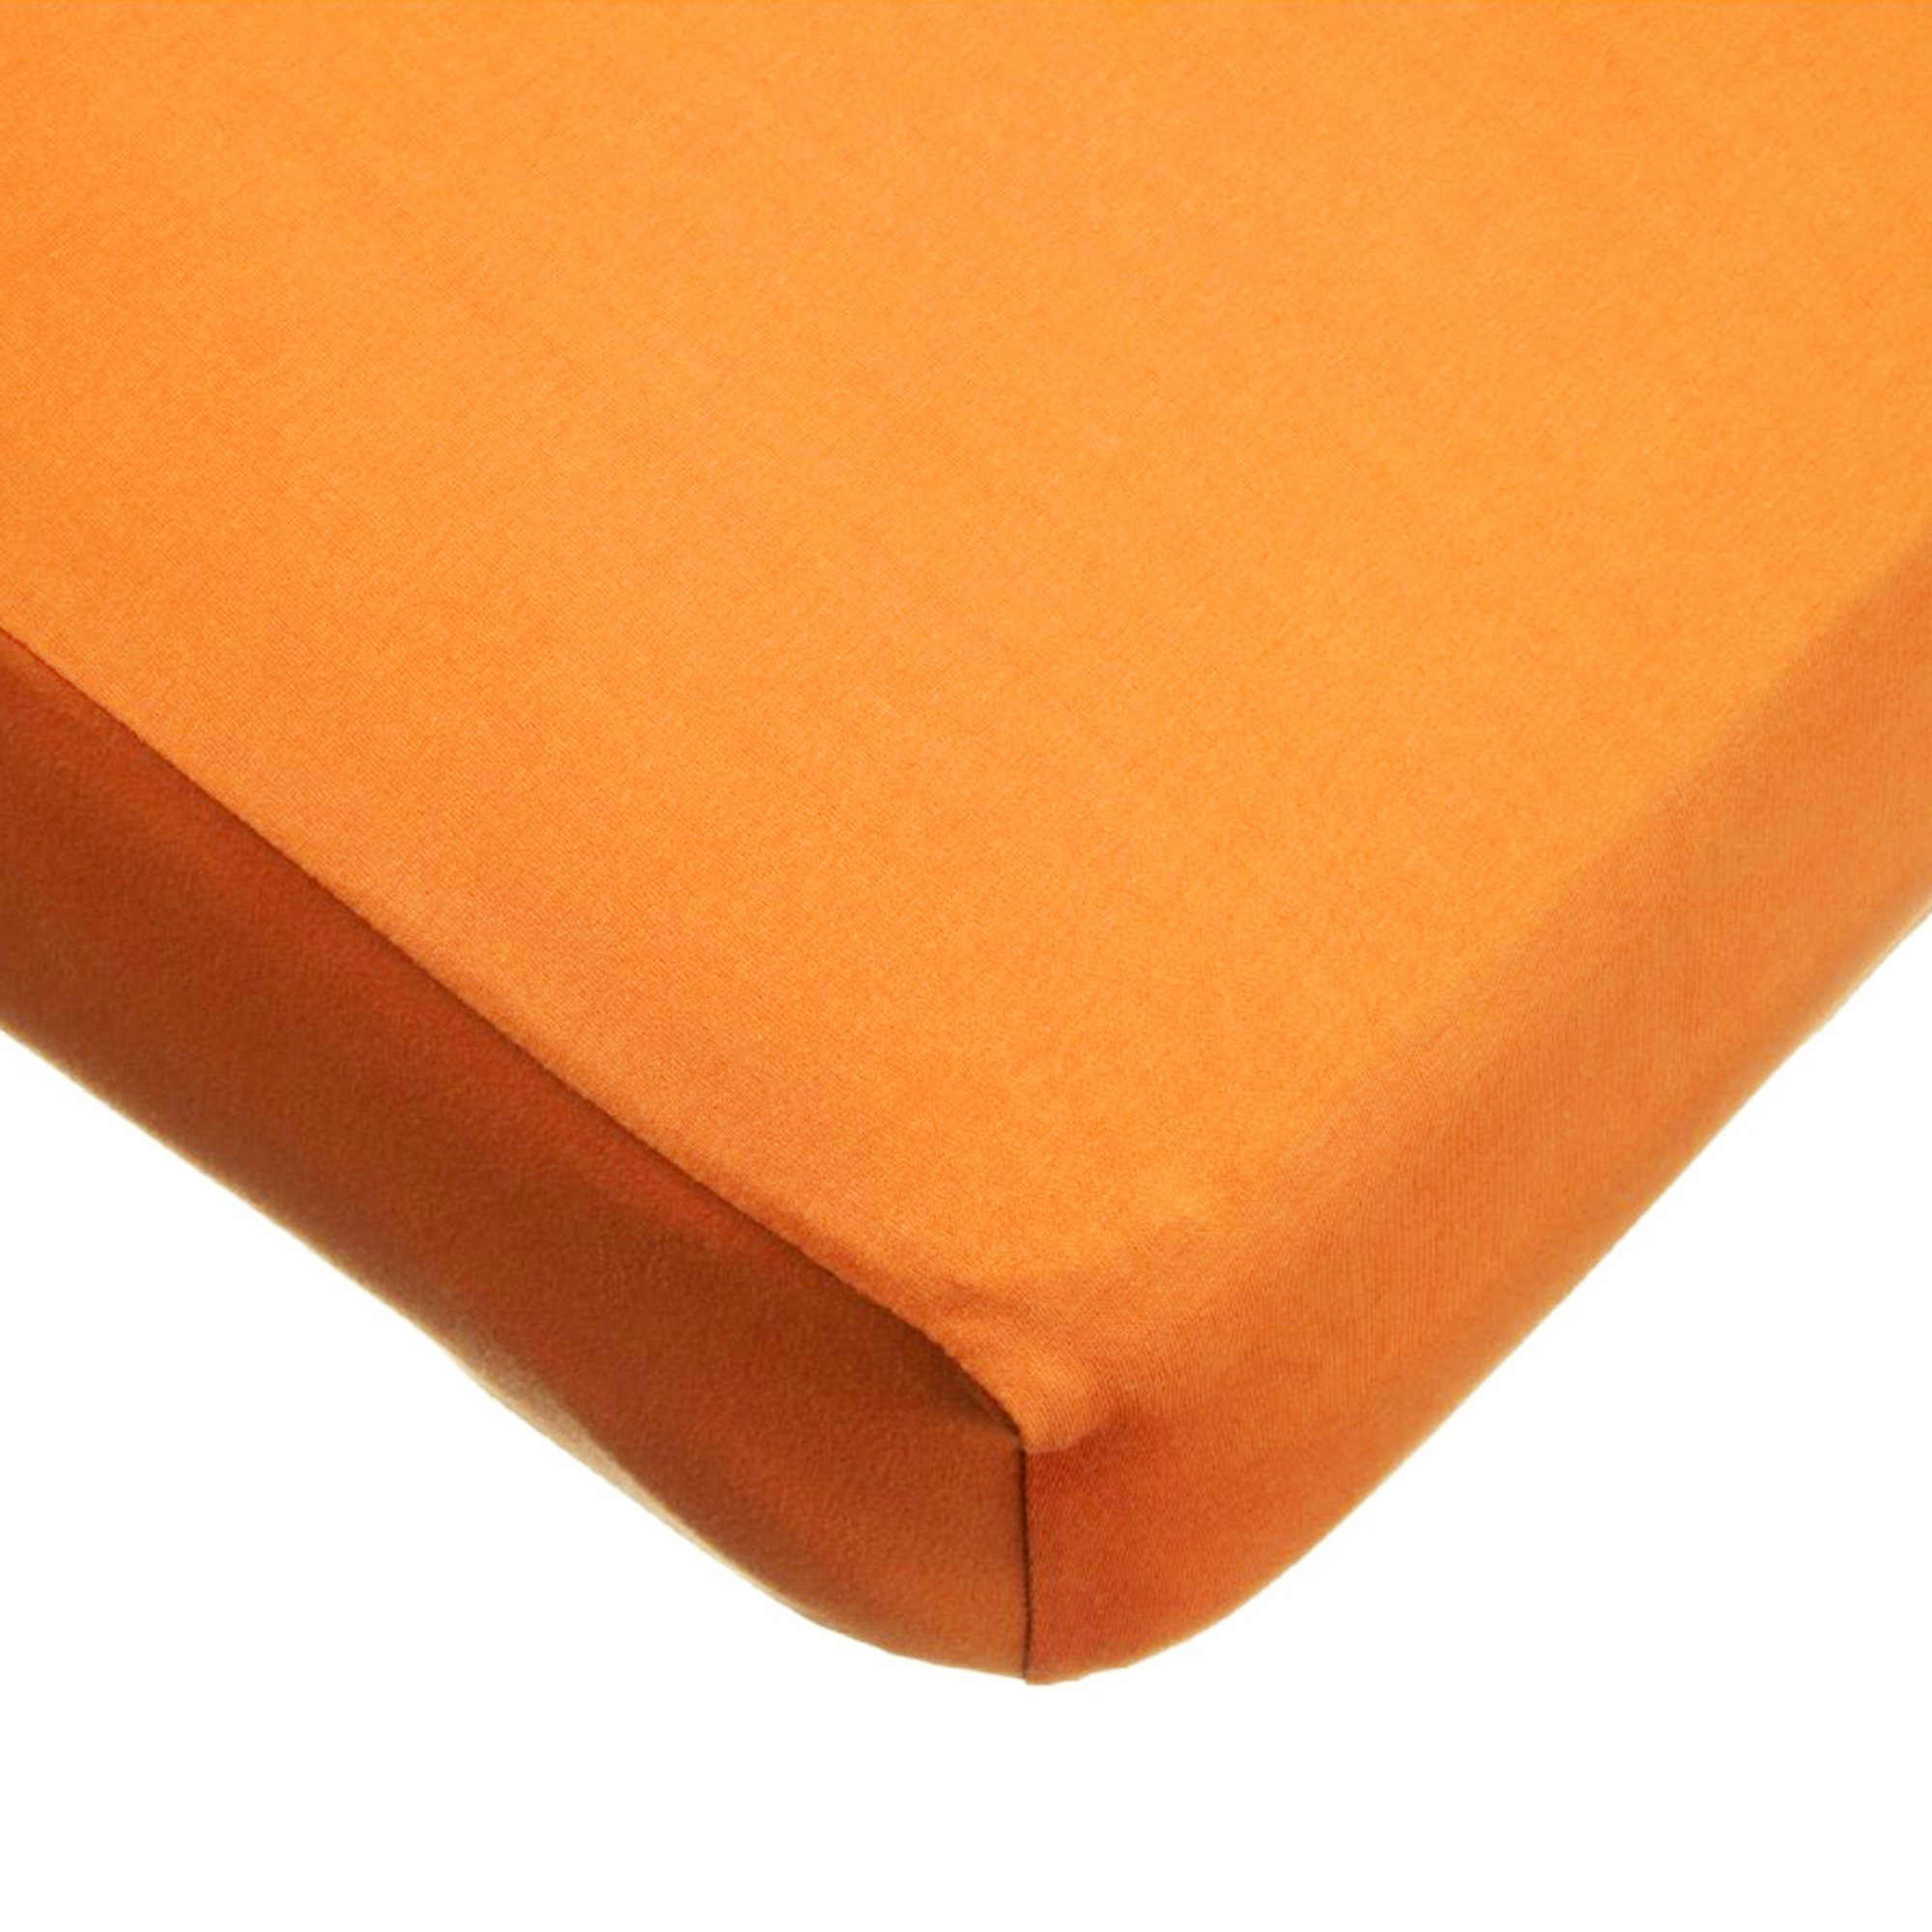 American Baby Company Supreme 100% Cotton Jersey Knit Fitted Crib Sheet for Standard Crib and Toddler Mattresses,  Orange